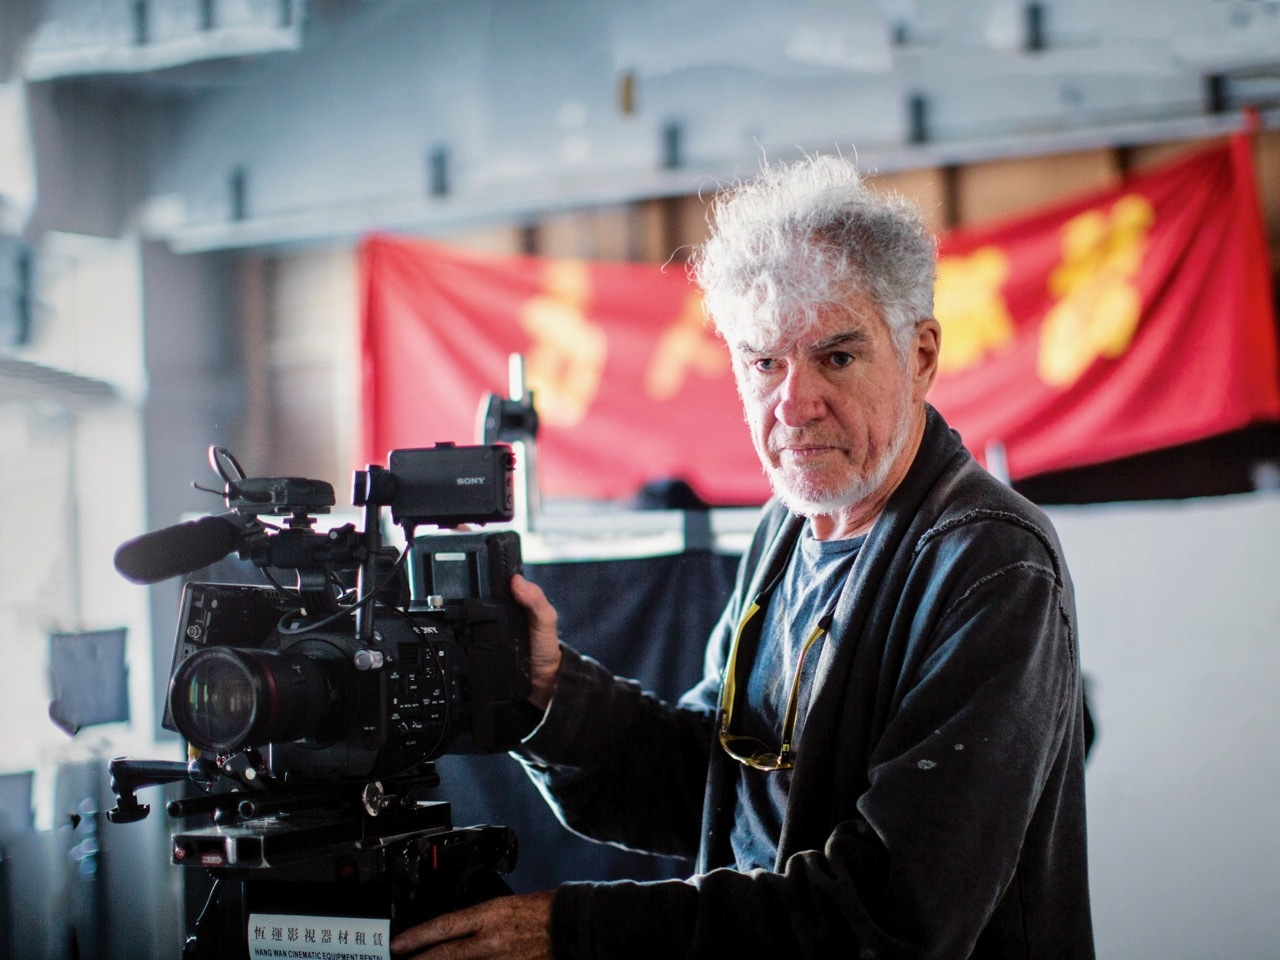 Christopher Doyle on Moving on From Wong Kar-wai, Constant Reinvention, and the Strange Journey of Life